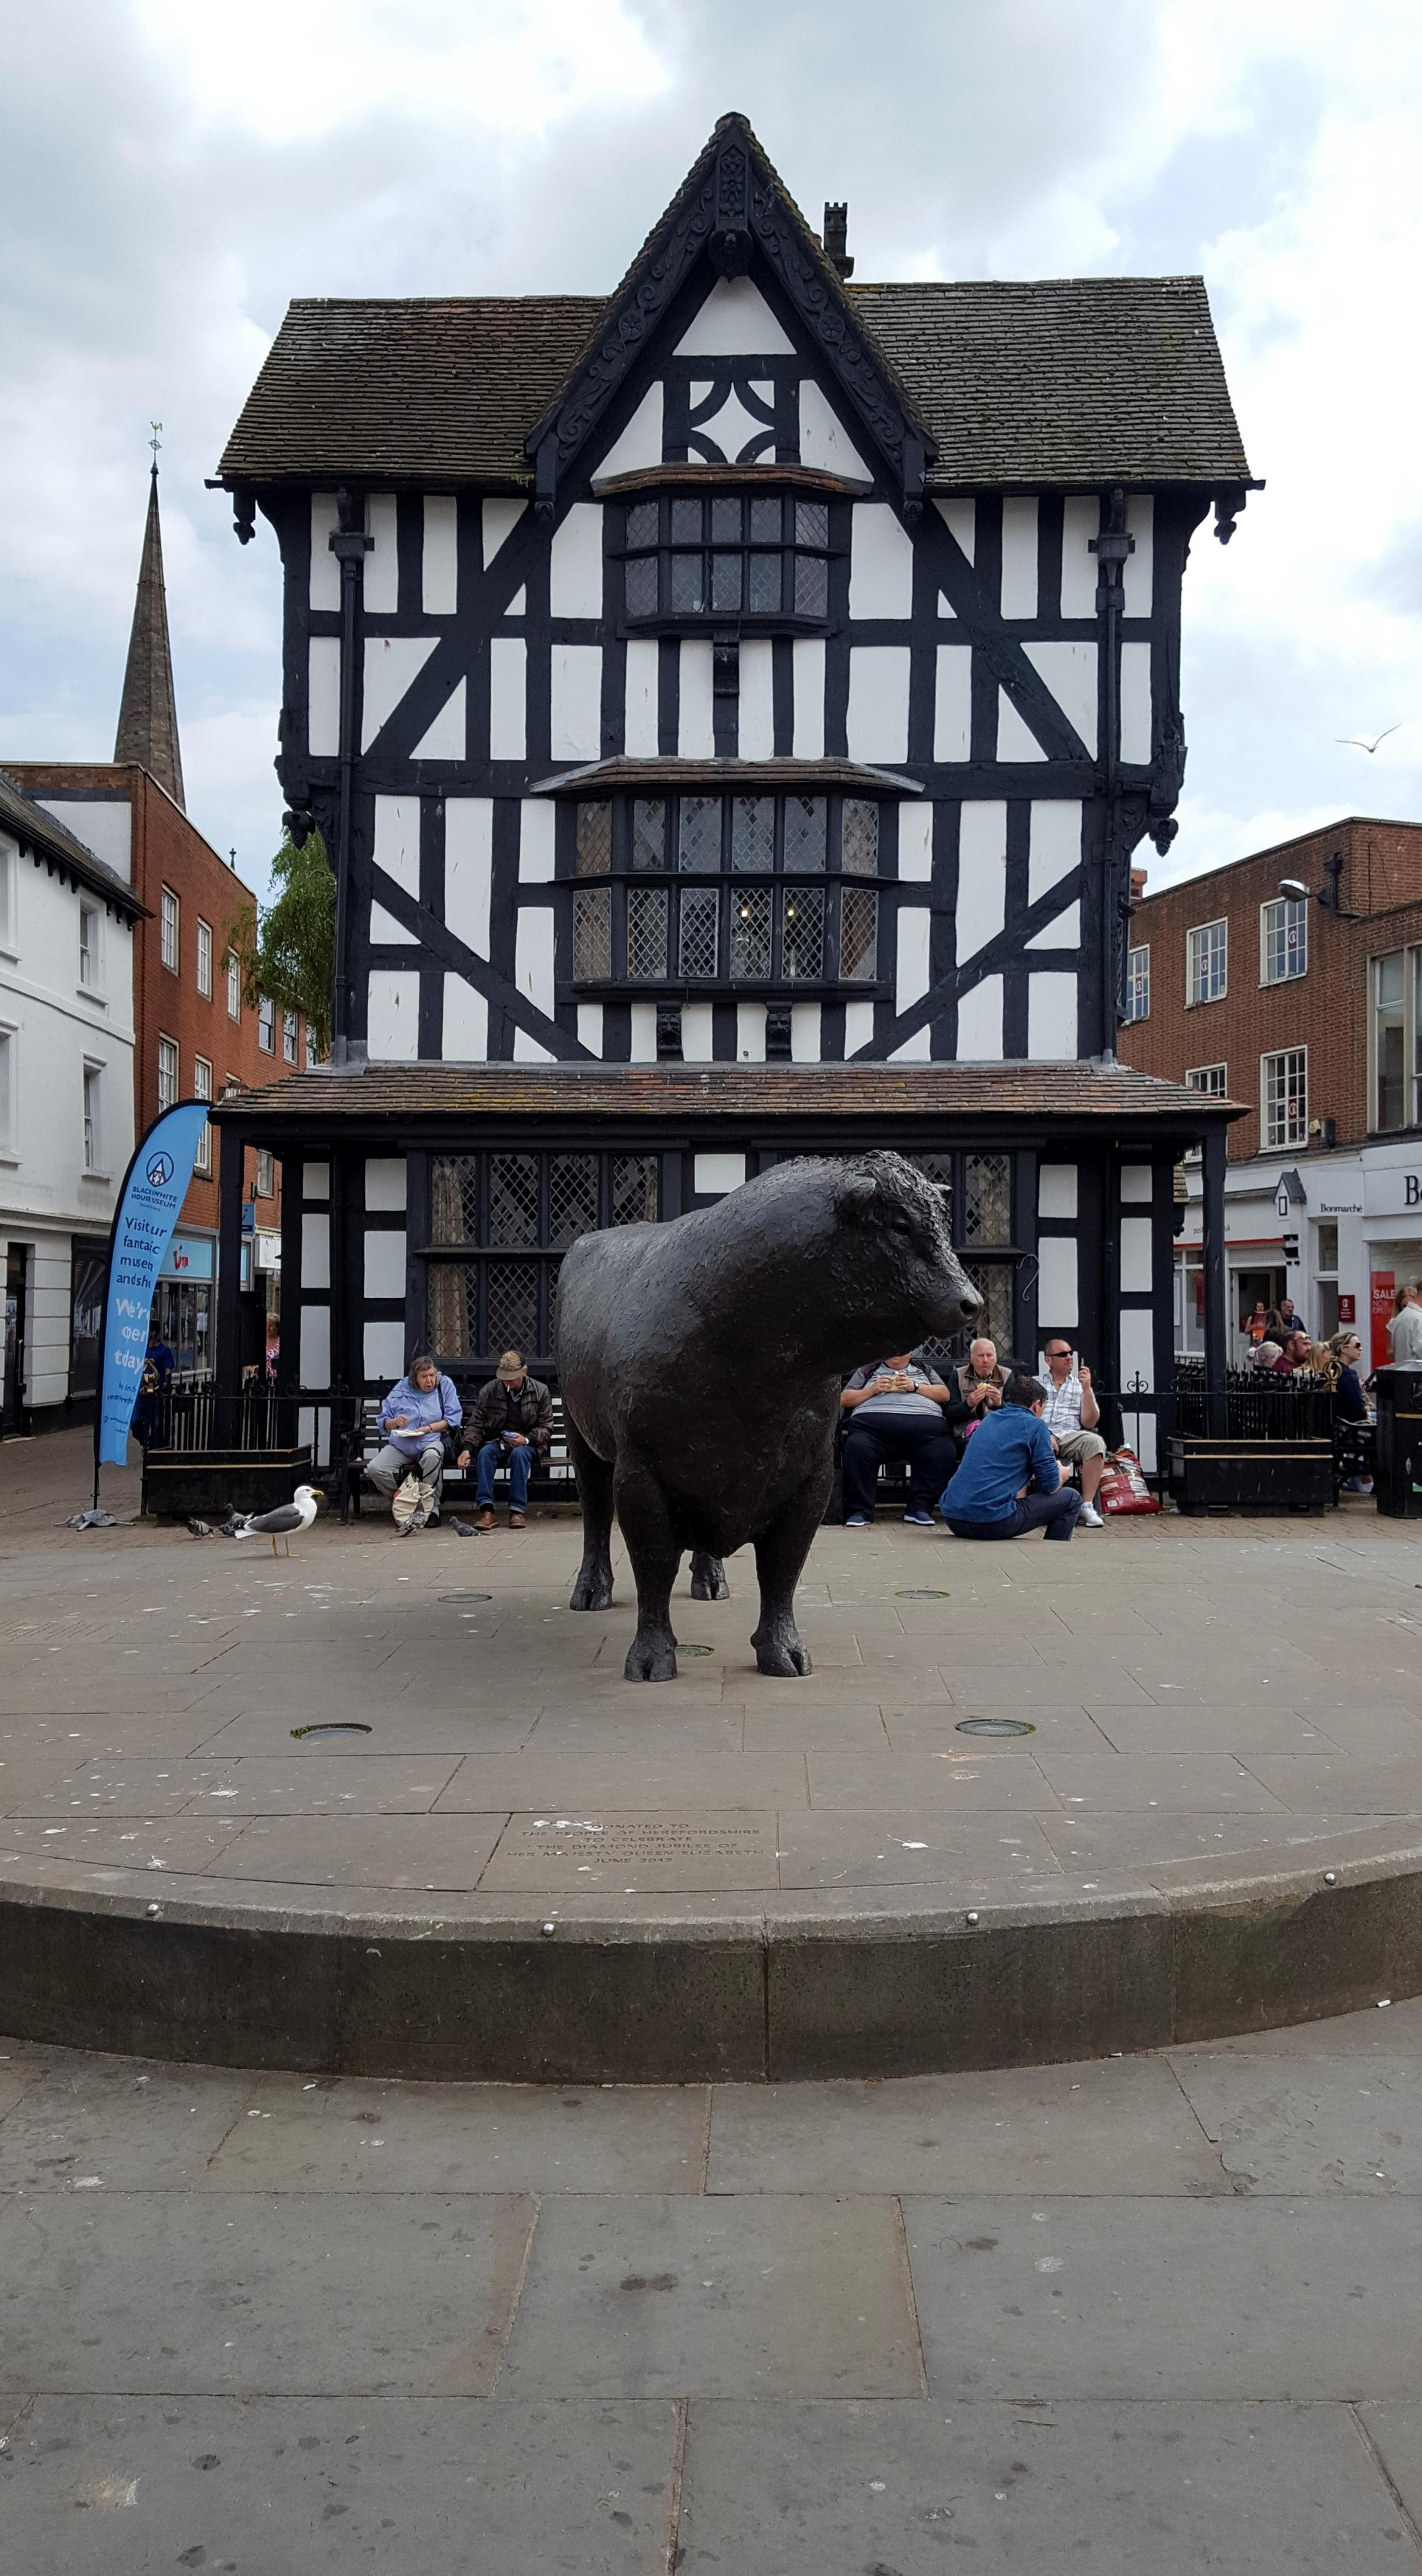 Seagull droppings next to the Hereford bull statue in Hereford's High Town